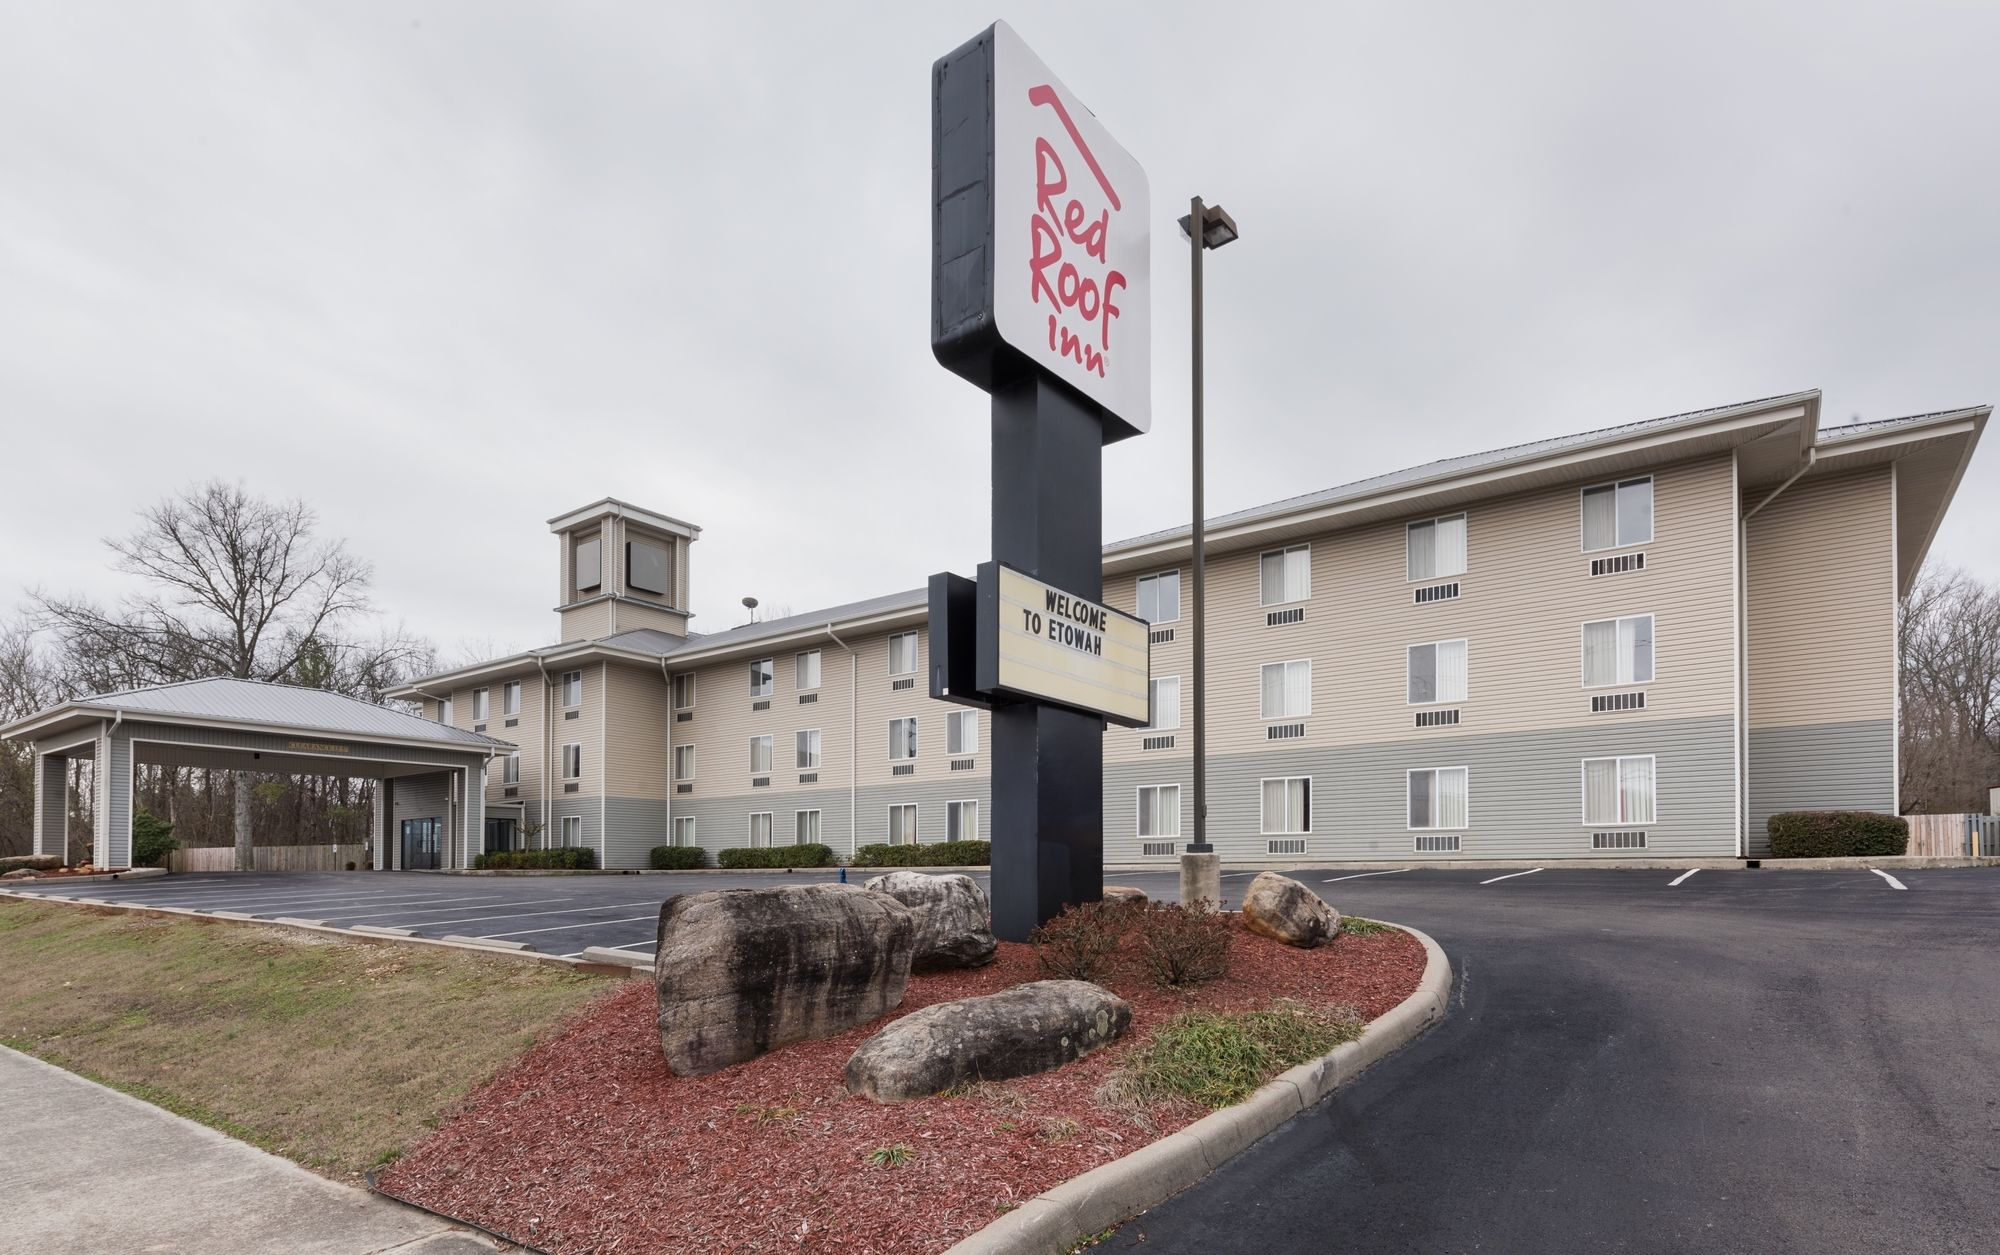 Red Roof Inn Etowah